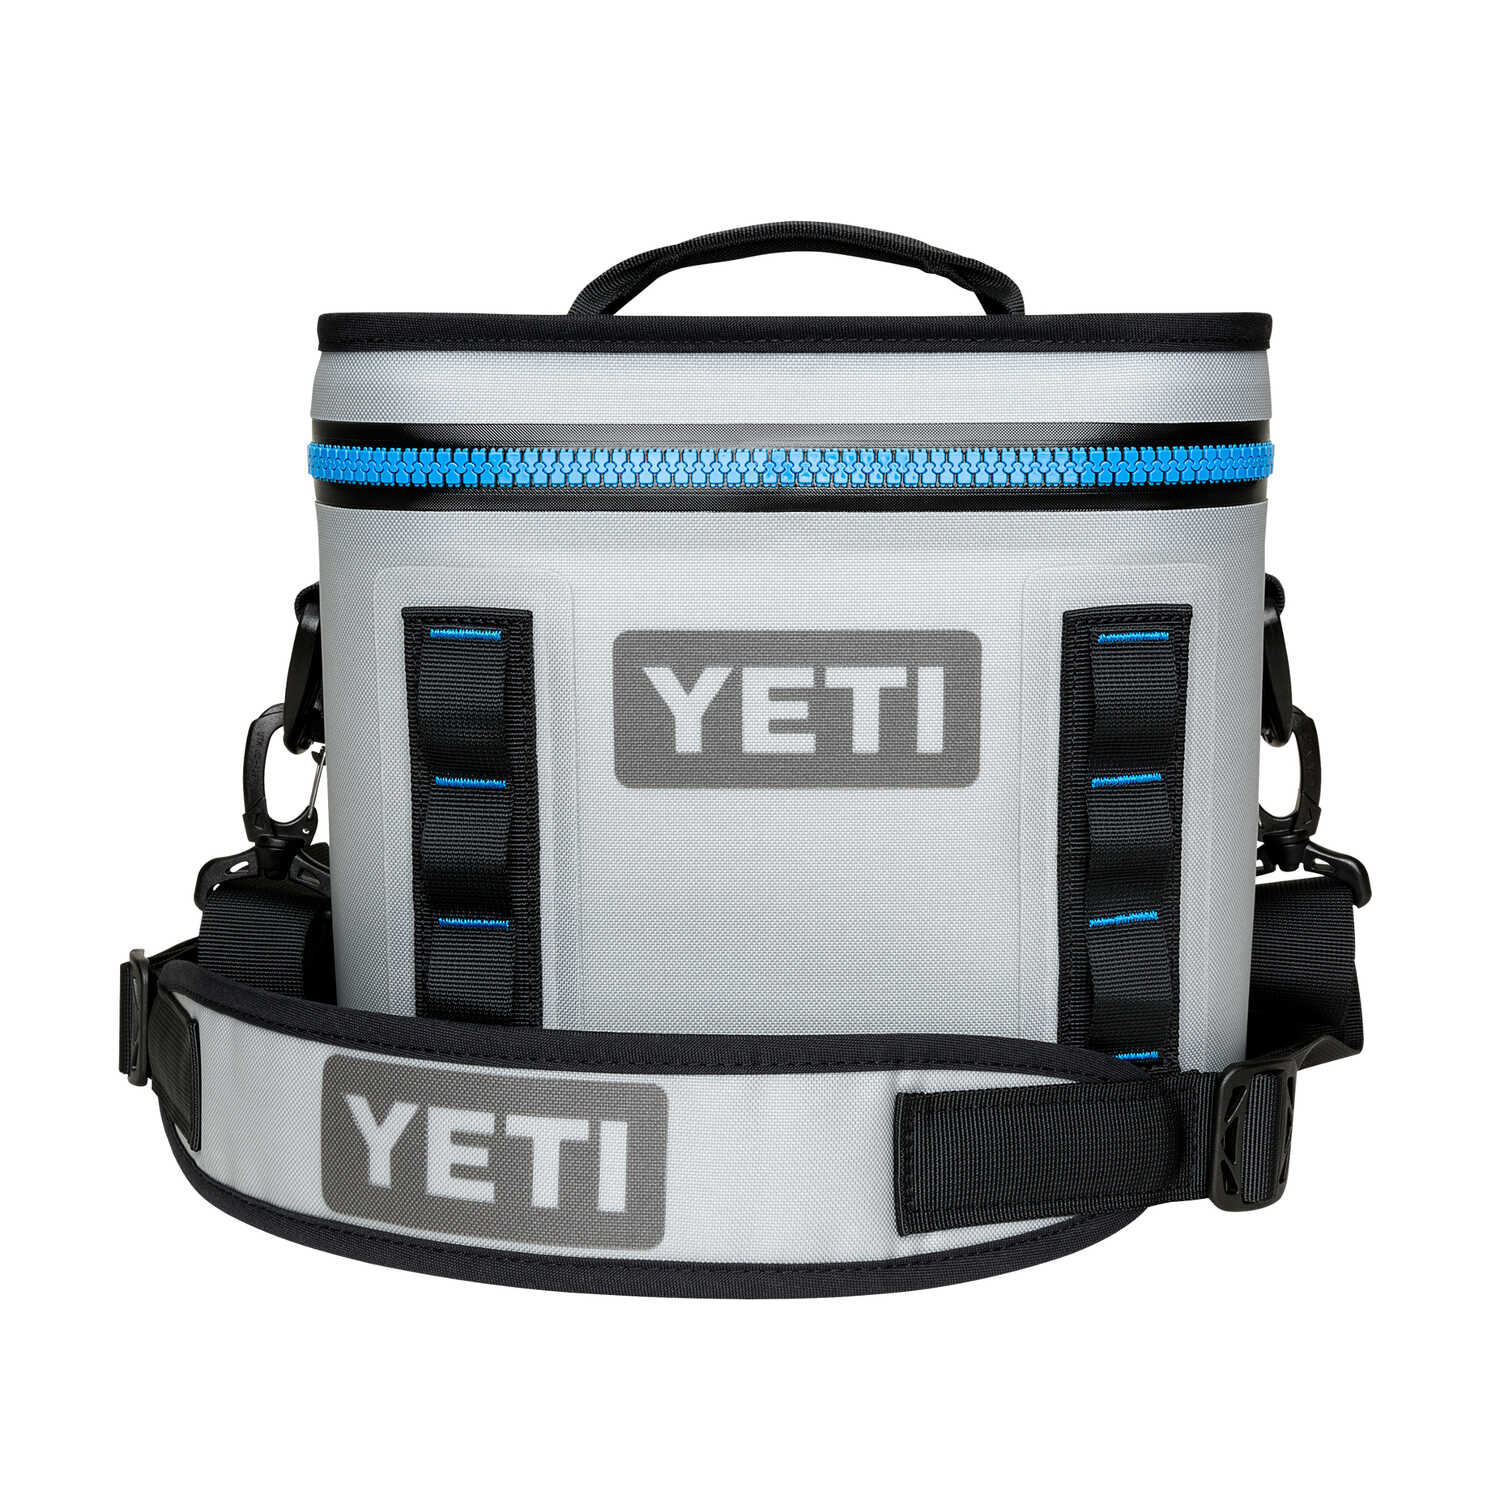 YETI  Hopper Flip 8  Cooler Bag  Gray